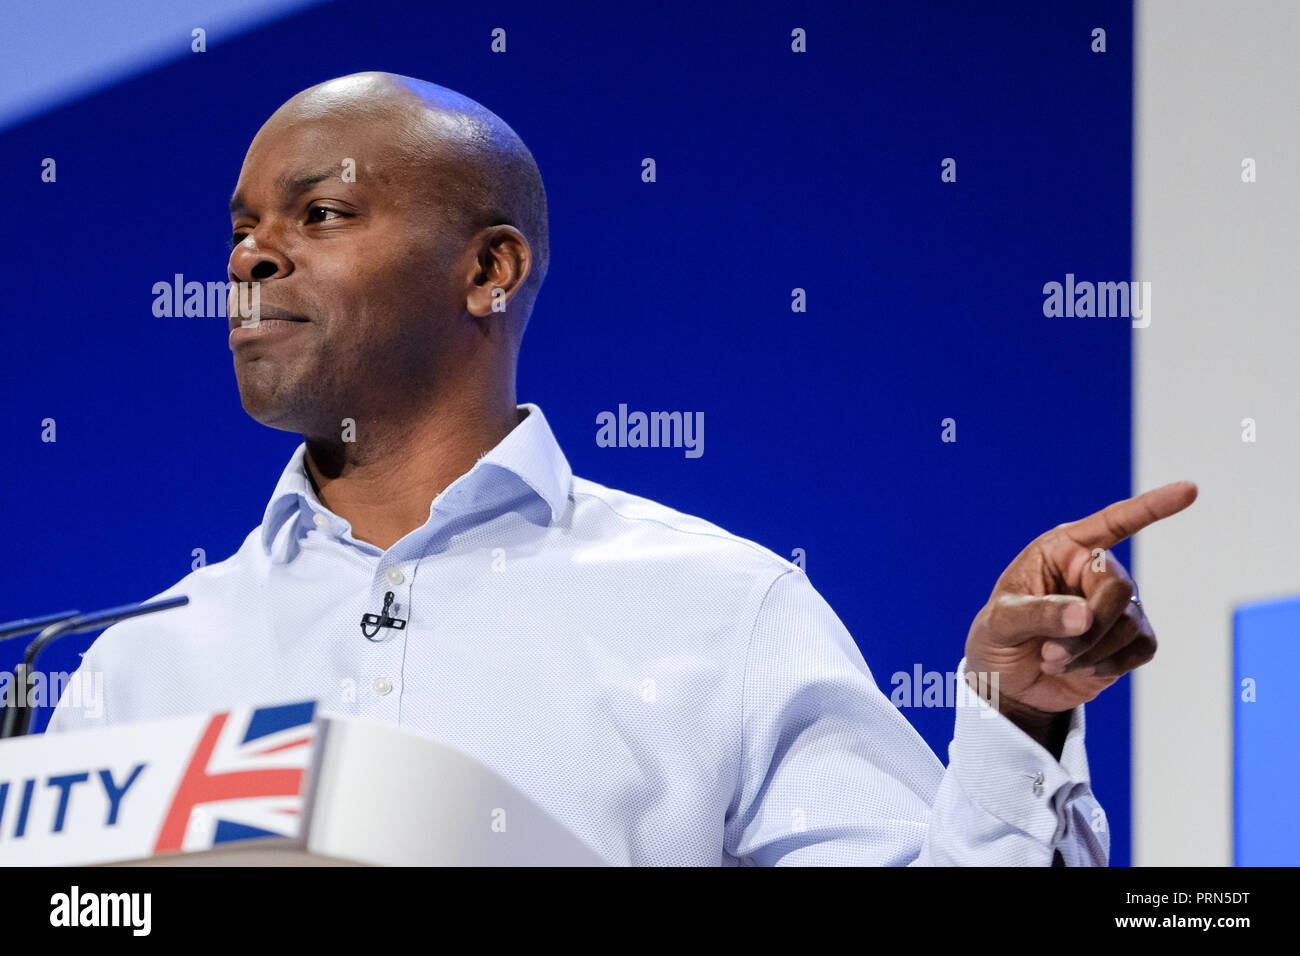 Shaun Bailey at the Conservative Party Conference on Wednesday 3 October 2018 held at ICC Birmingham , Birmingham . Pictured: Shaun Bailey is a British politician and youth worker, who is the Conservative Party's candidate for the London mayoral election in 2020. Picture by Julie Edwards. - Stock Image